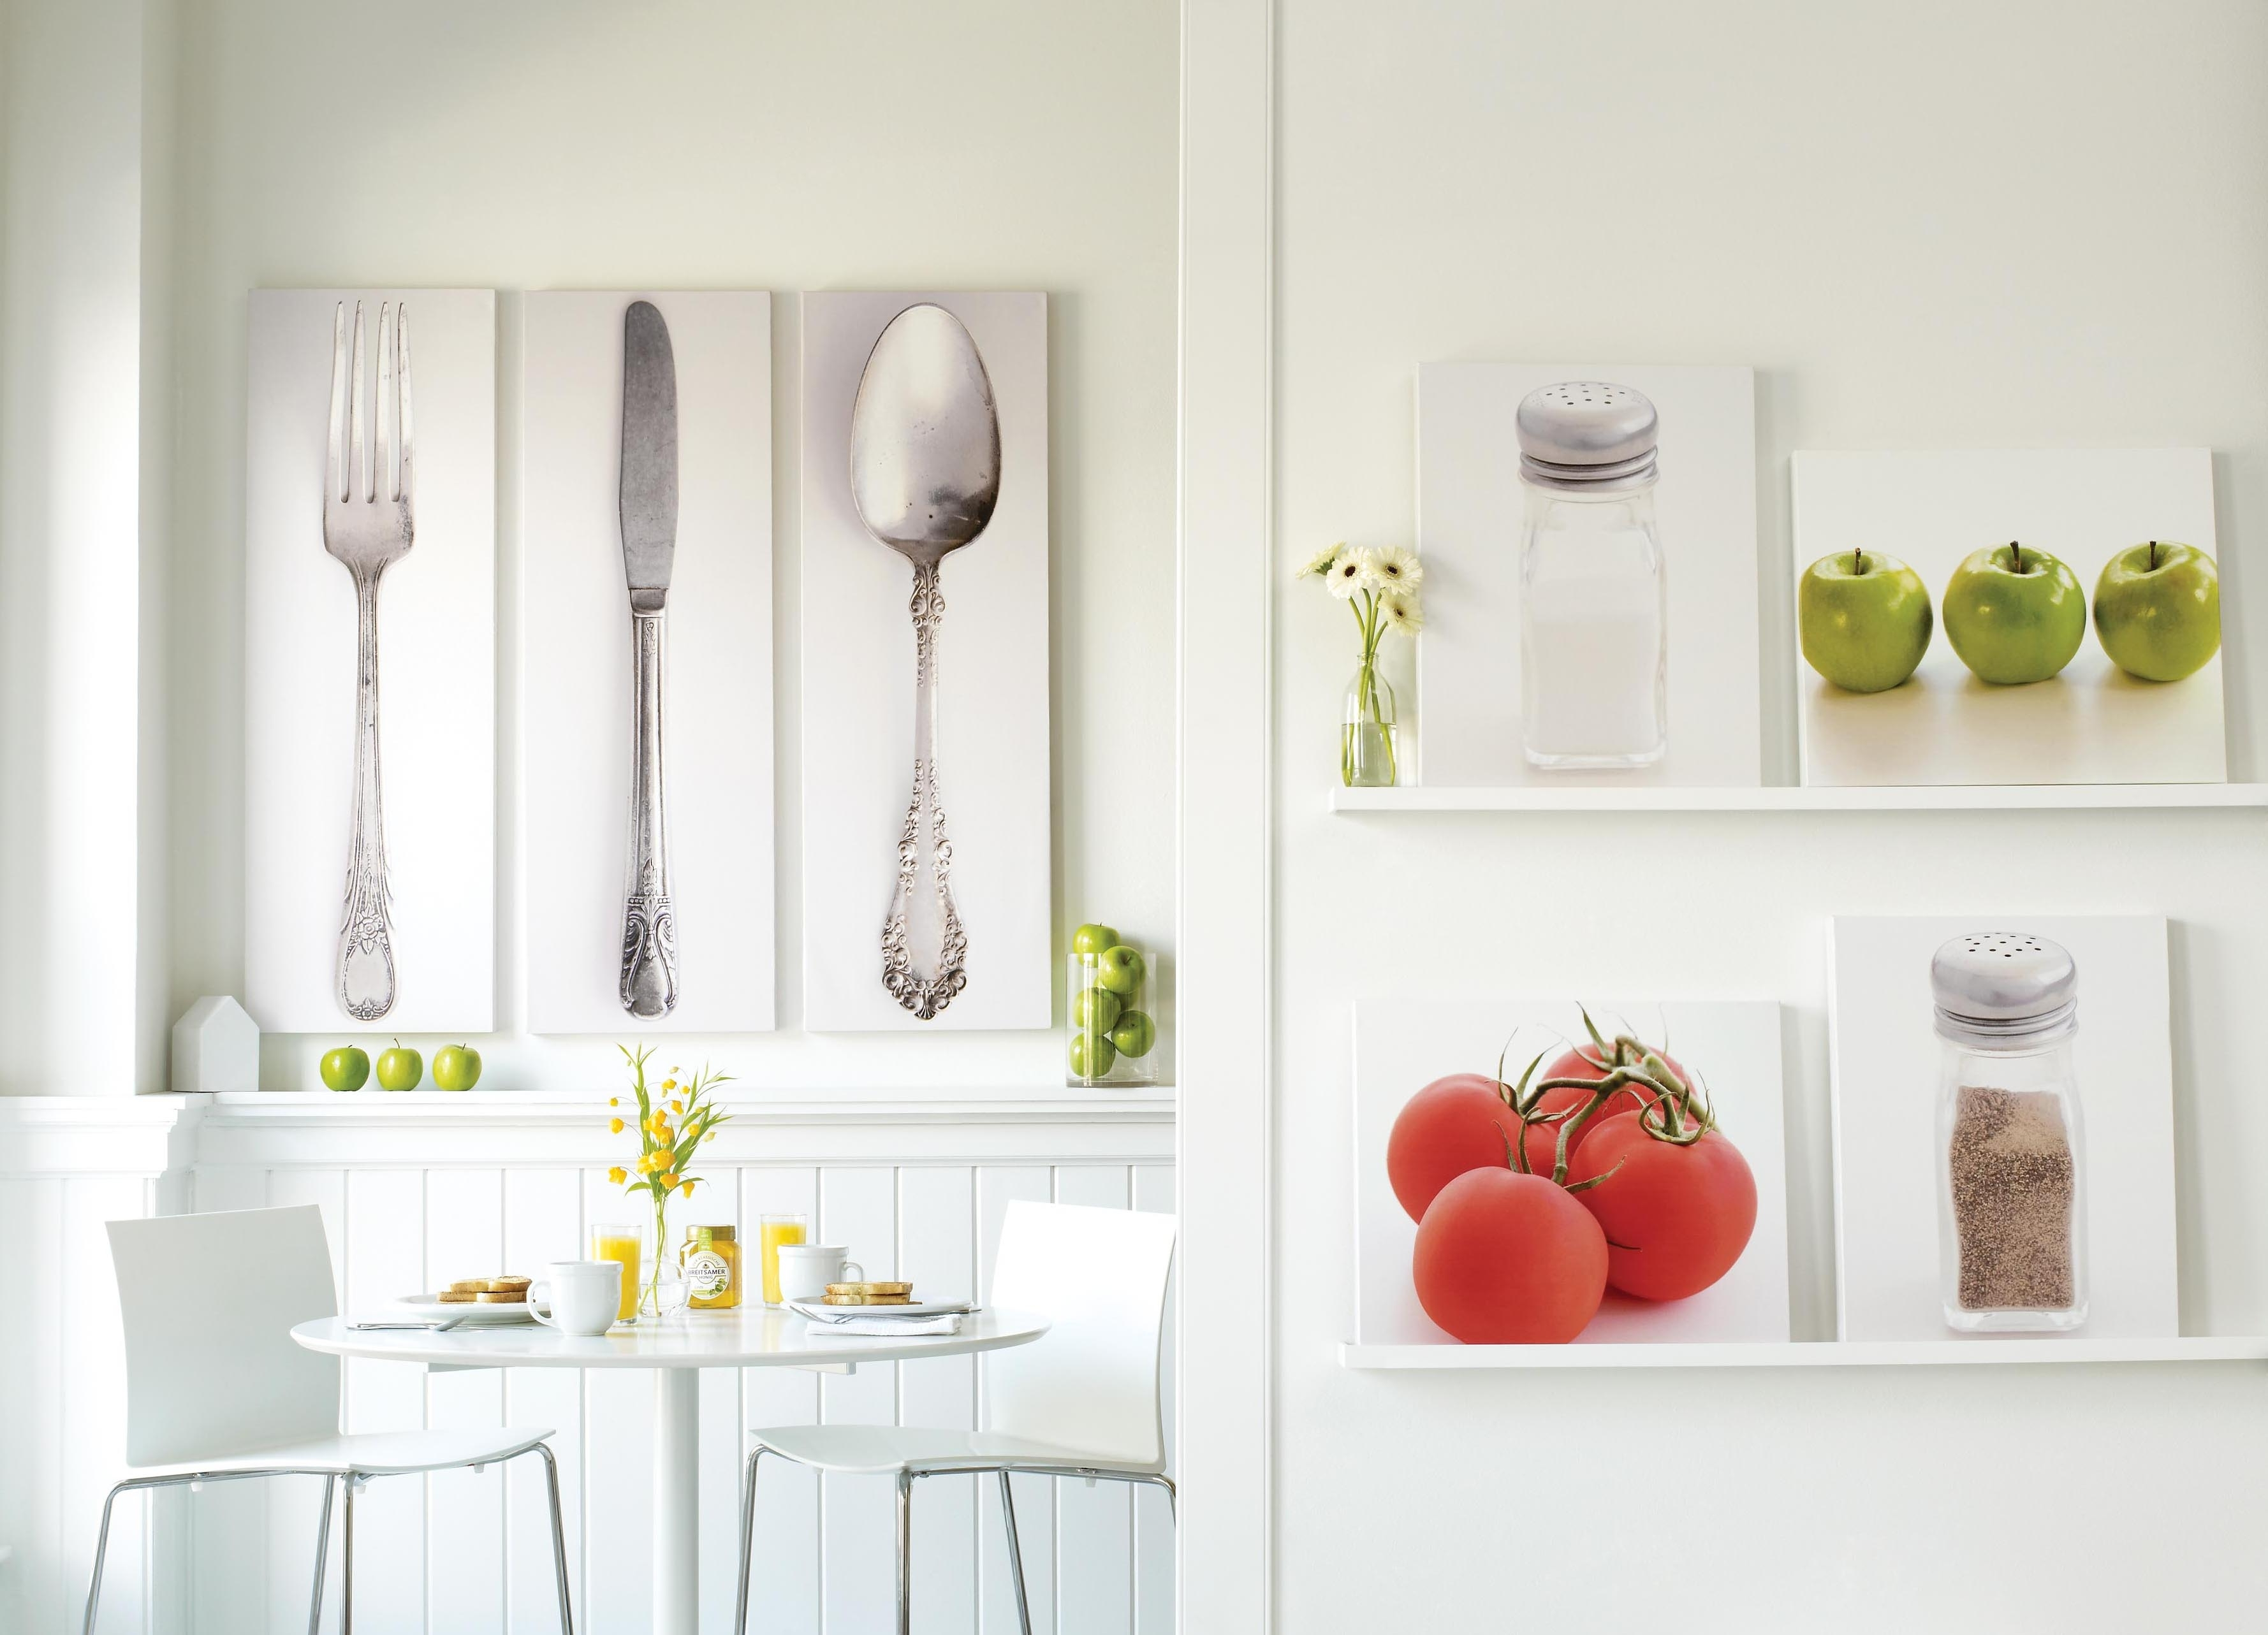 Wondrous Knife,spoon And Fork Pictures As Kitchen Wall Decor In Pertaining To 2018 Modern Wall Art Decors (Gallery 14 of 20)